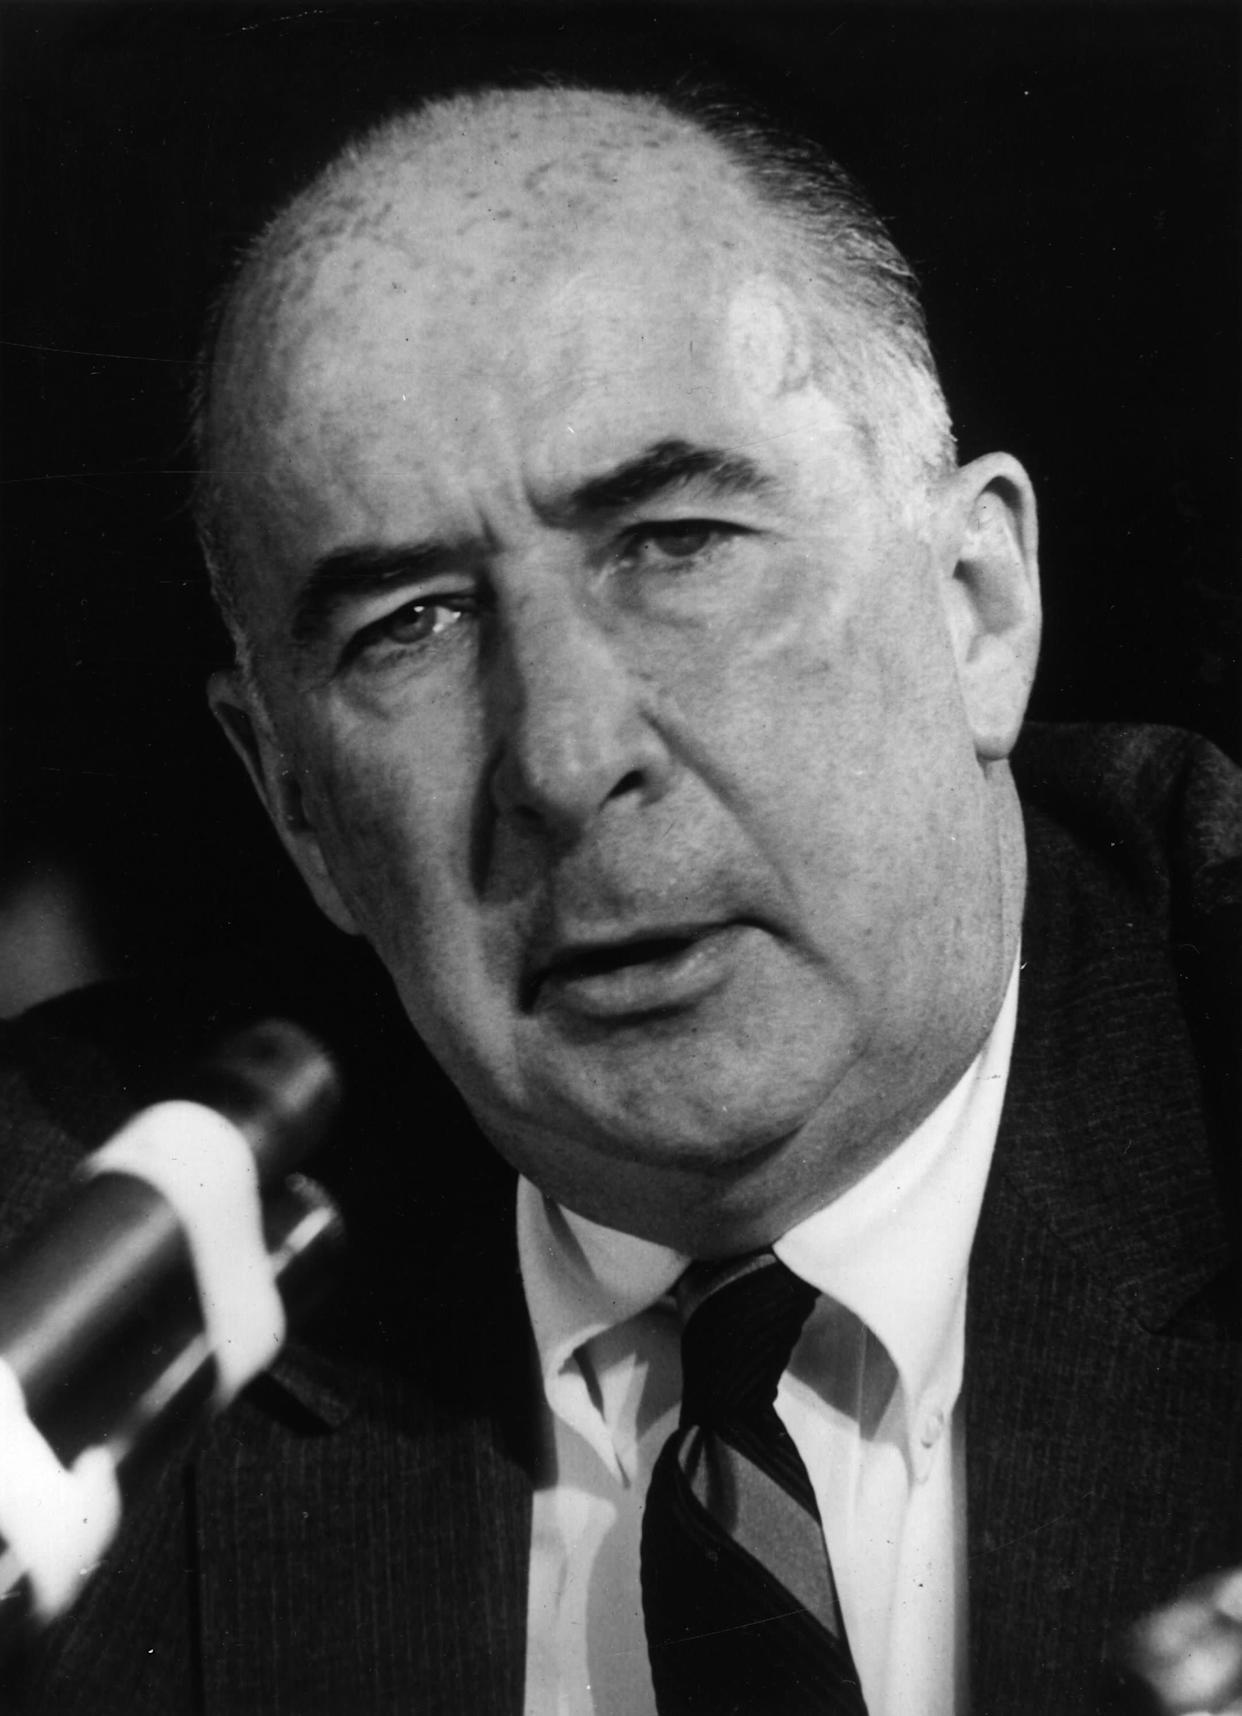 20th April 1973: American politician and former attorney-general John Mitchell, one of Richard Nixon's top aides, who faces charges in the Watergate scandal. (Photo by Keystone/Getty Images)